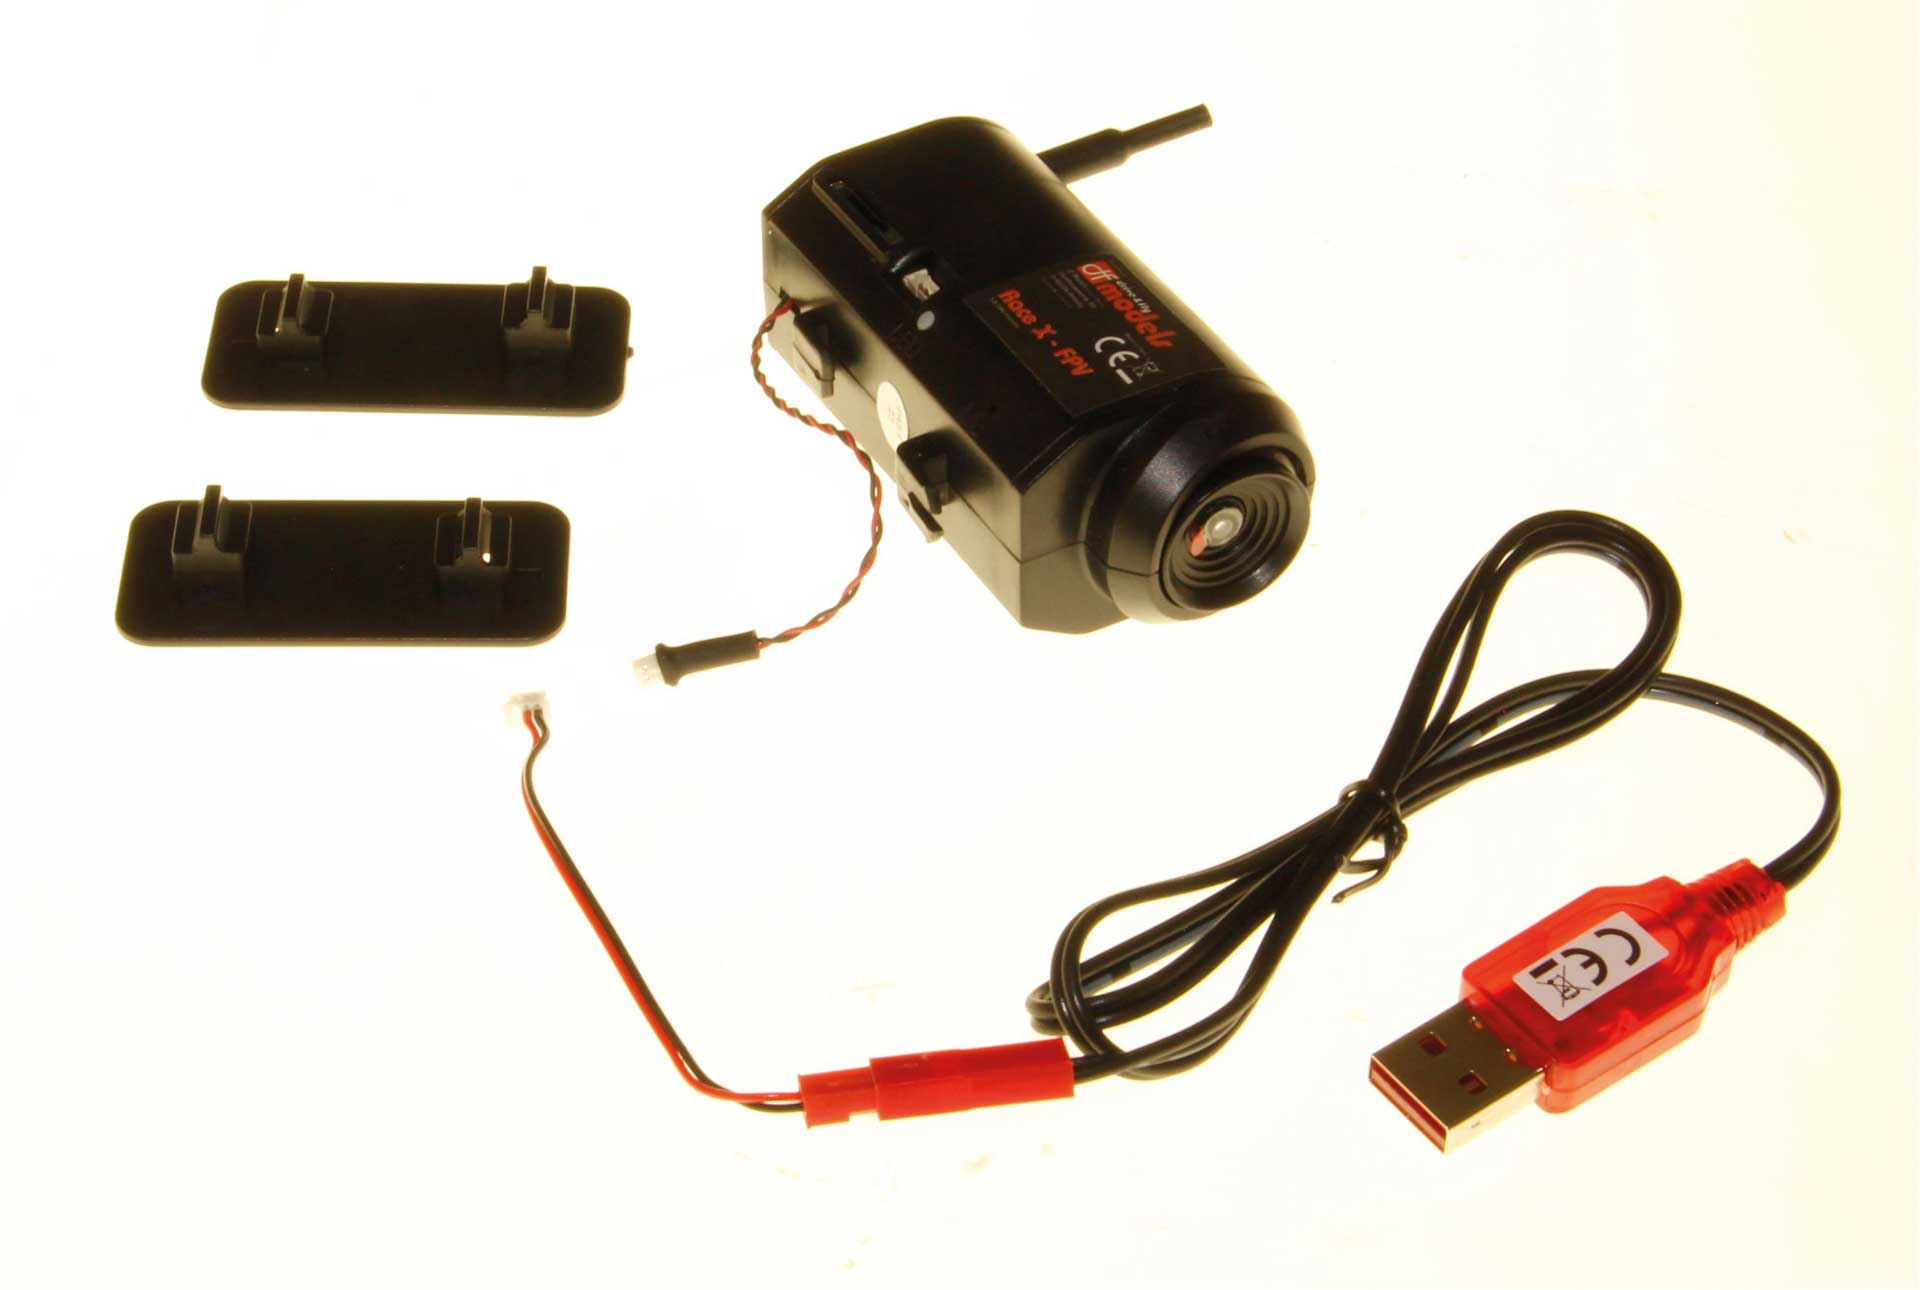 DRIVE & FLY MODELS CAMERA FOR RACE X FPV REMOTE CONTROL